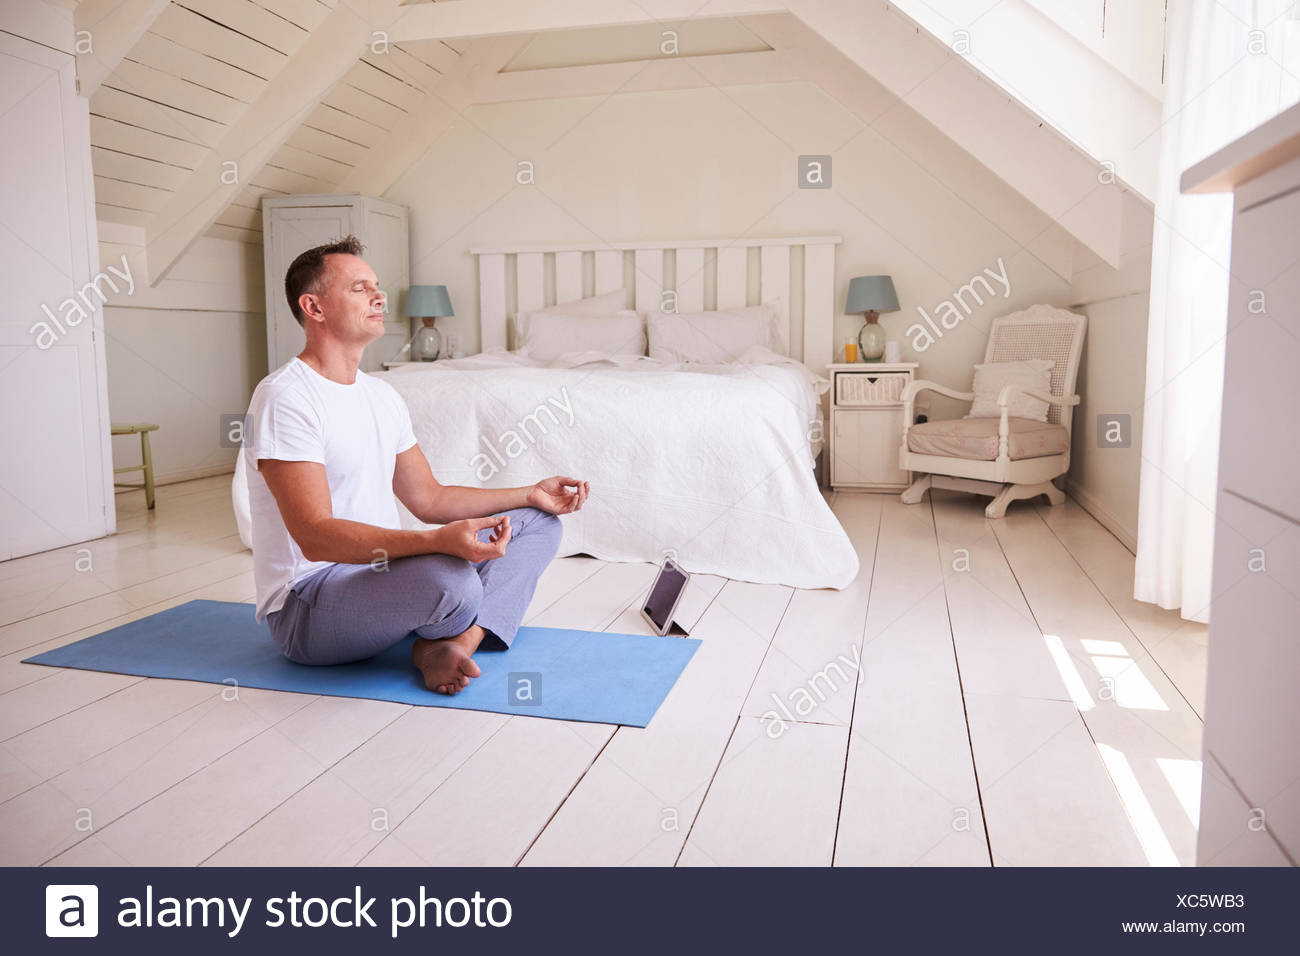 Mature Man With Digital Tablet Using Meditation App In Bedroom - Stock Image